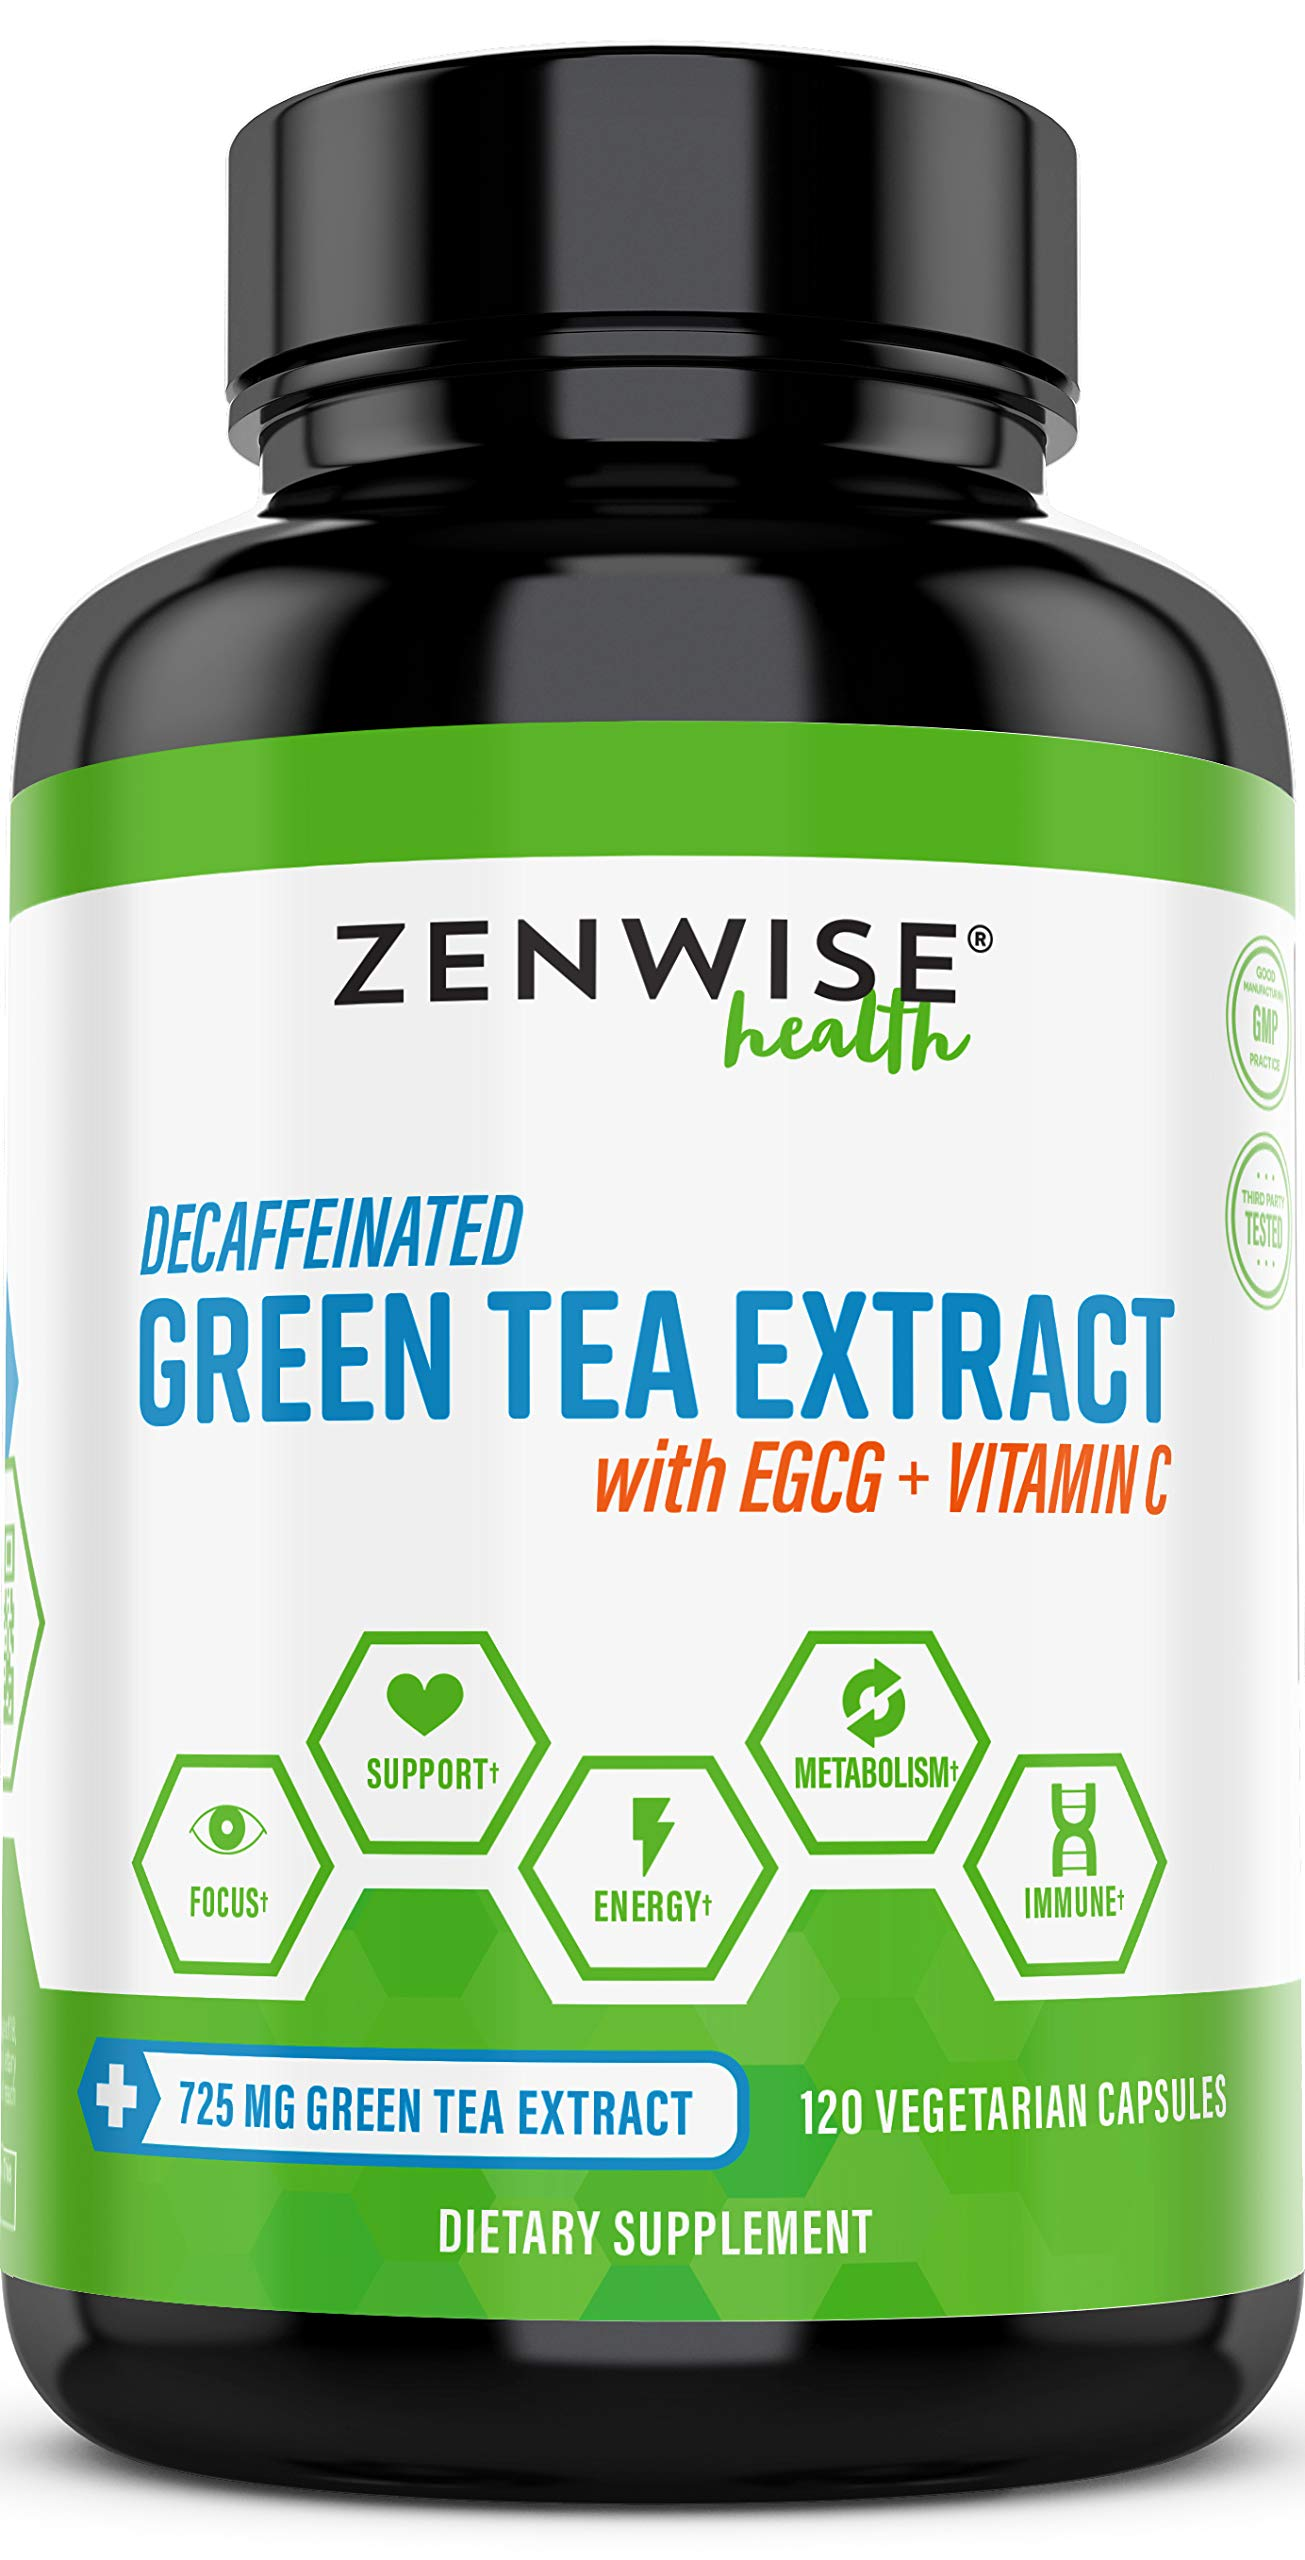 Green Tea Extract Supplement with EGCG & Vitamin C - Antioxidants & Polyphenols for Immune System - For Weight Support & Energy - Decaffeinated Pills for Brain & Heart Health - 120 Count